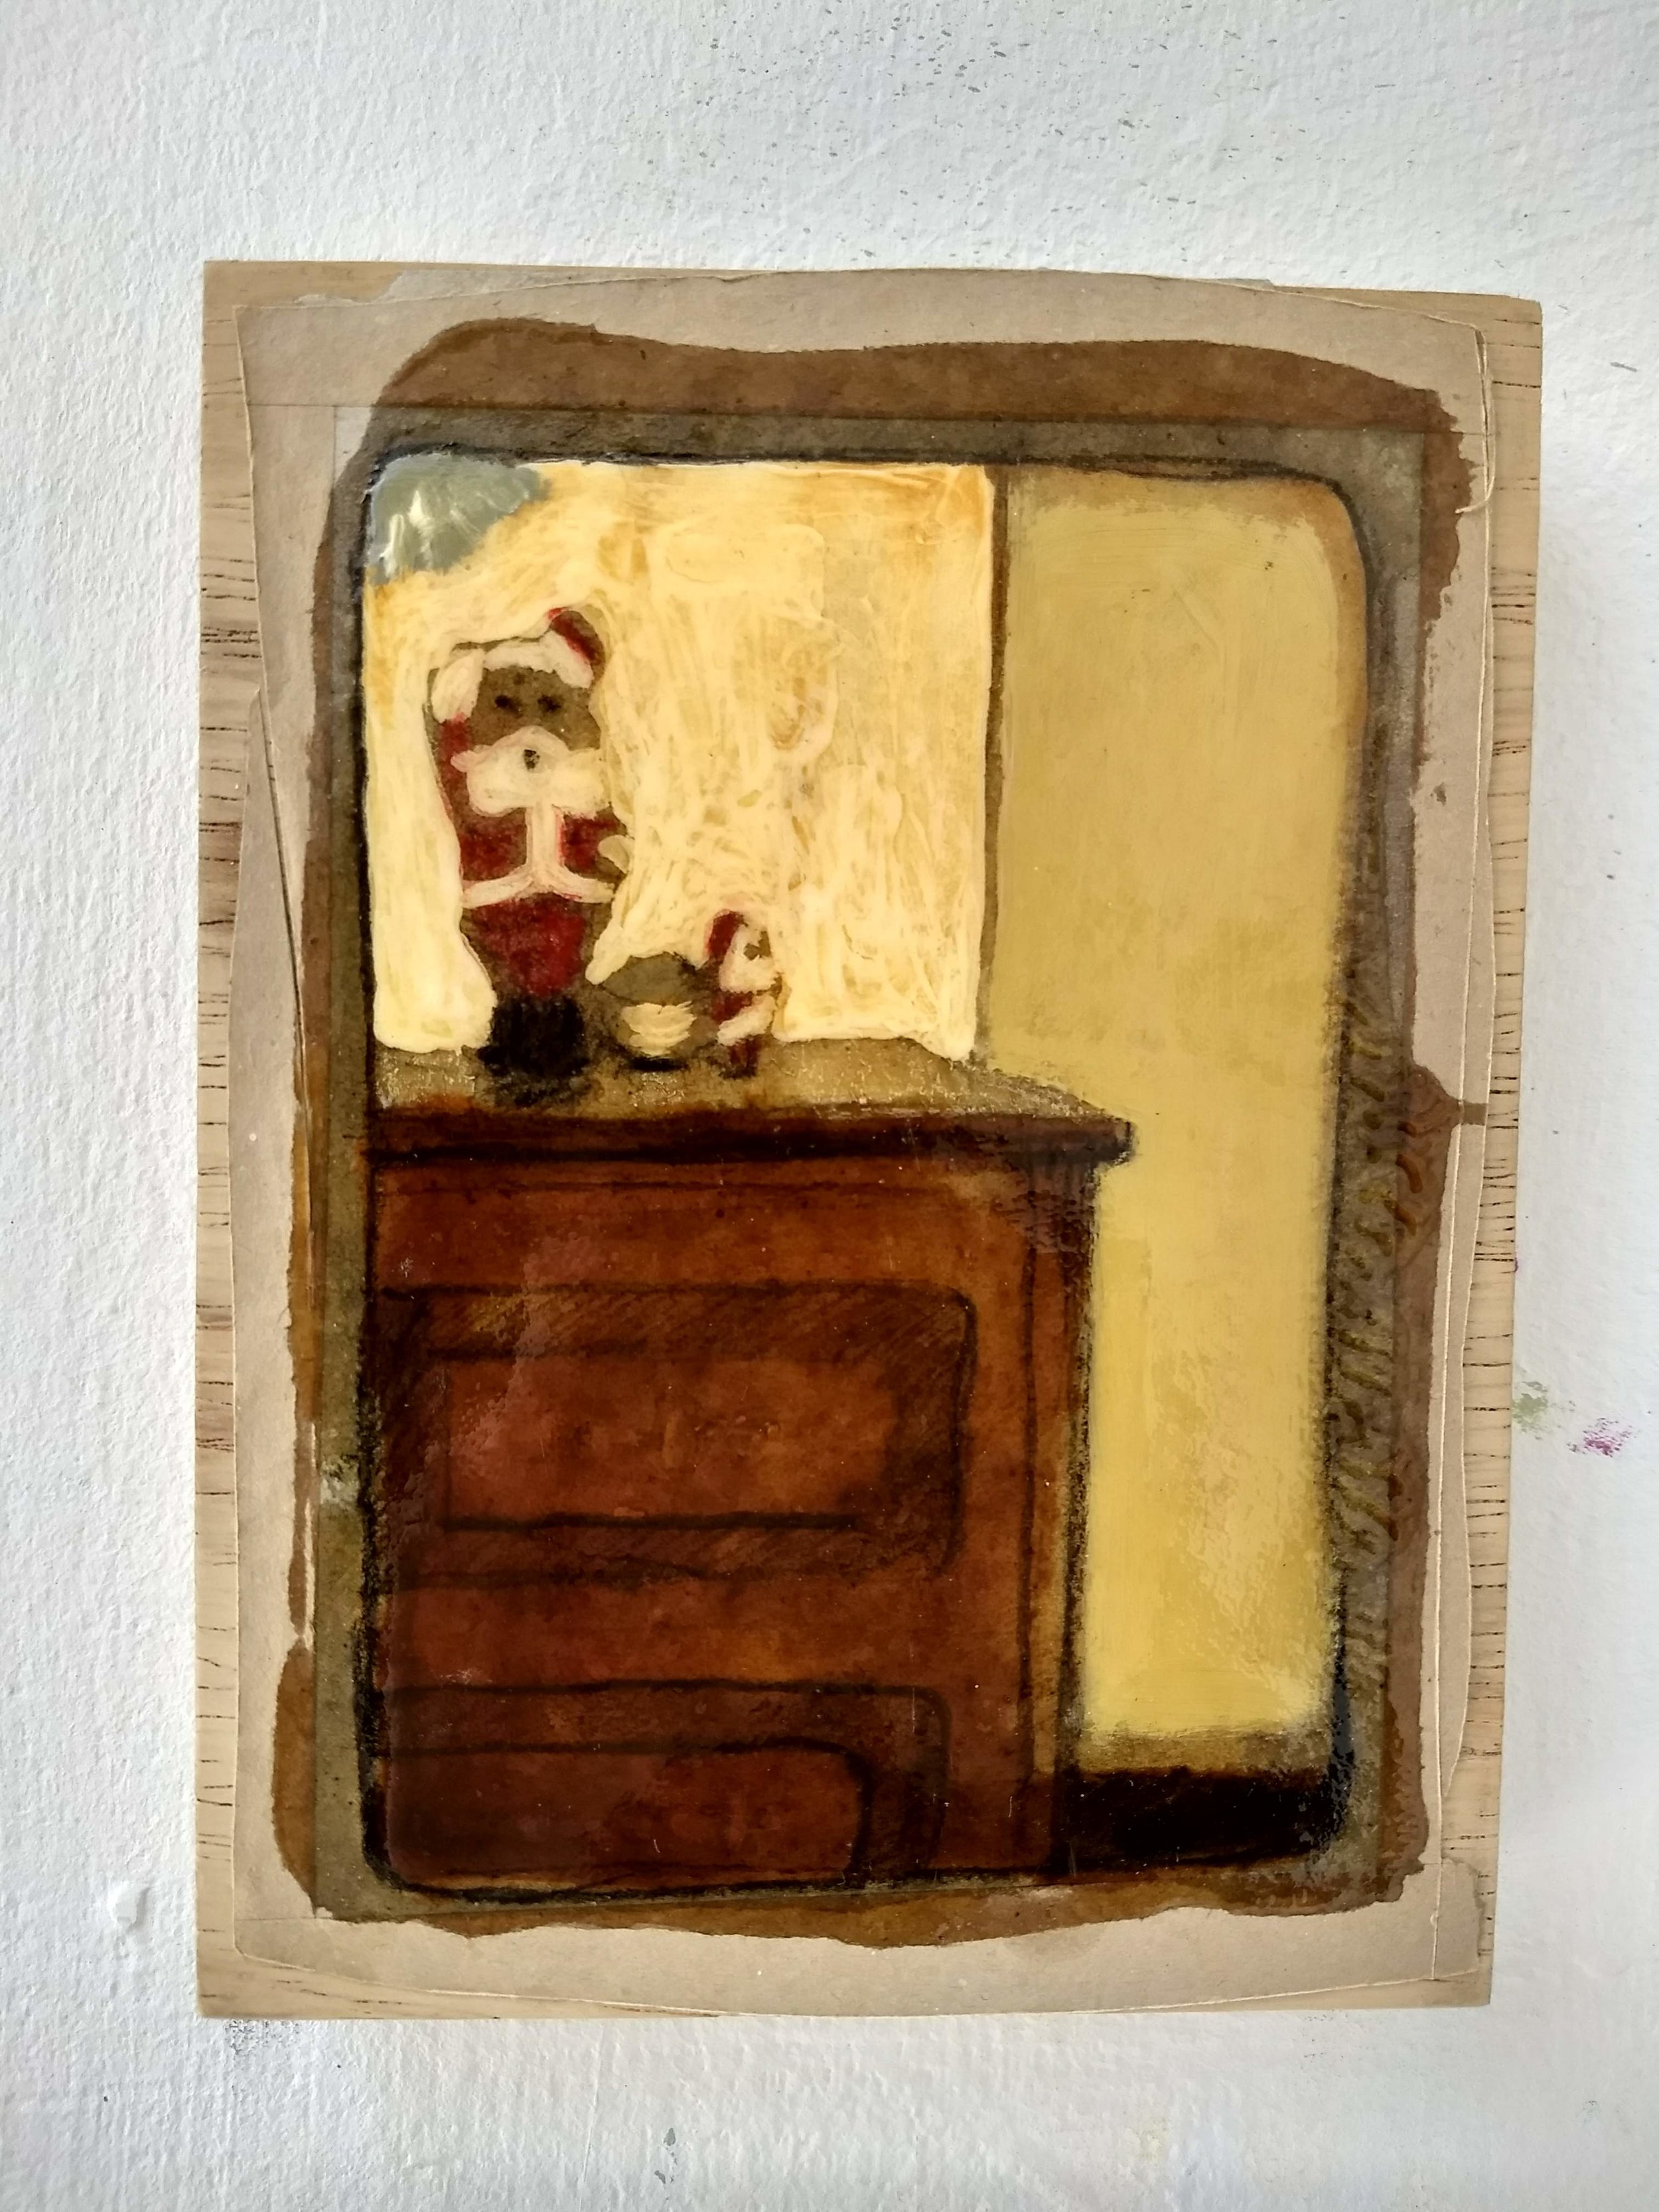 Work on wood  13x17 cm Mixed media